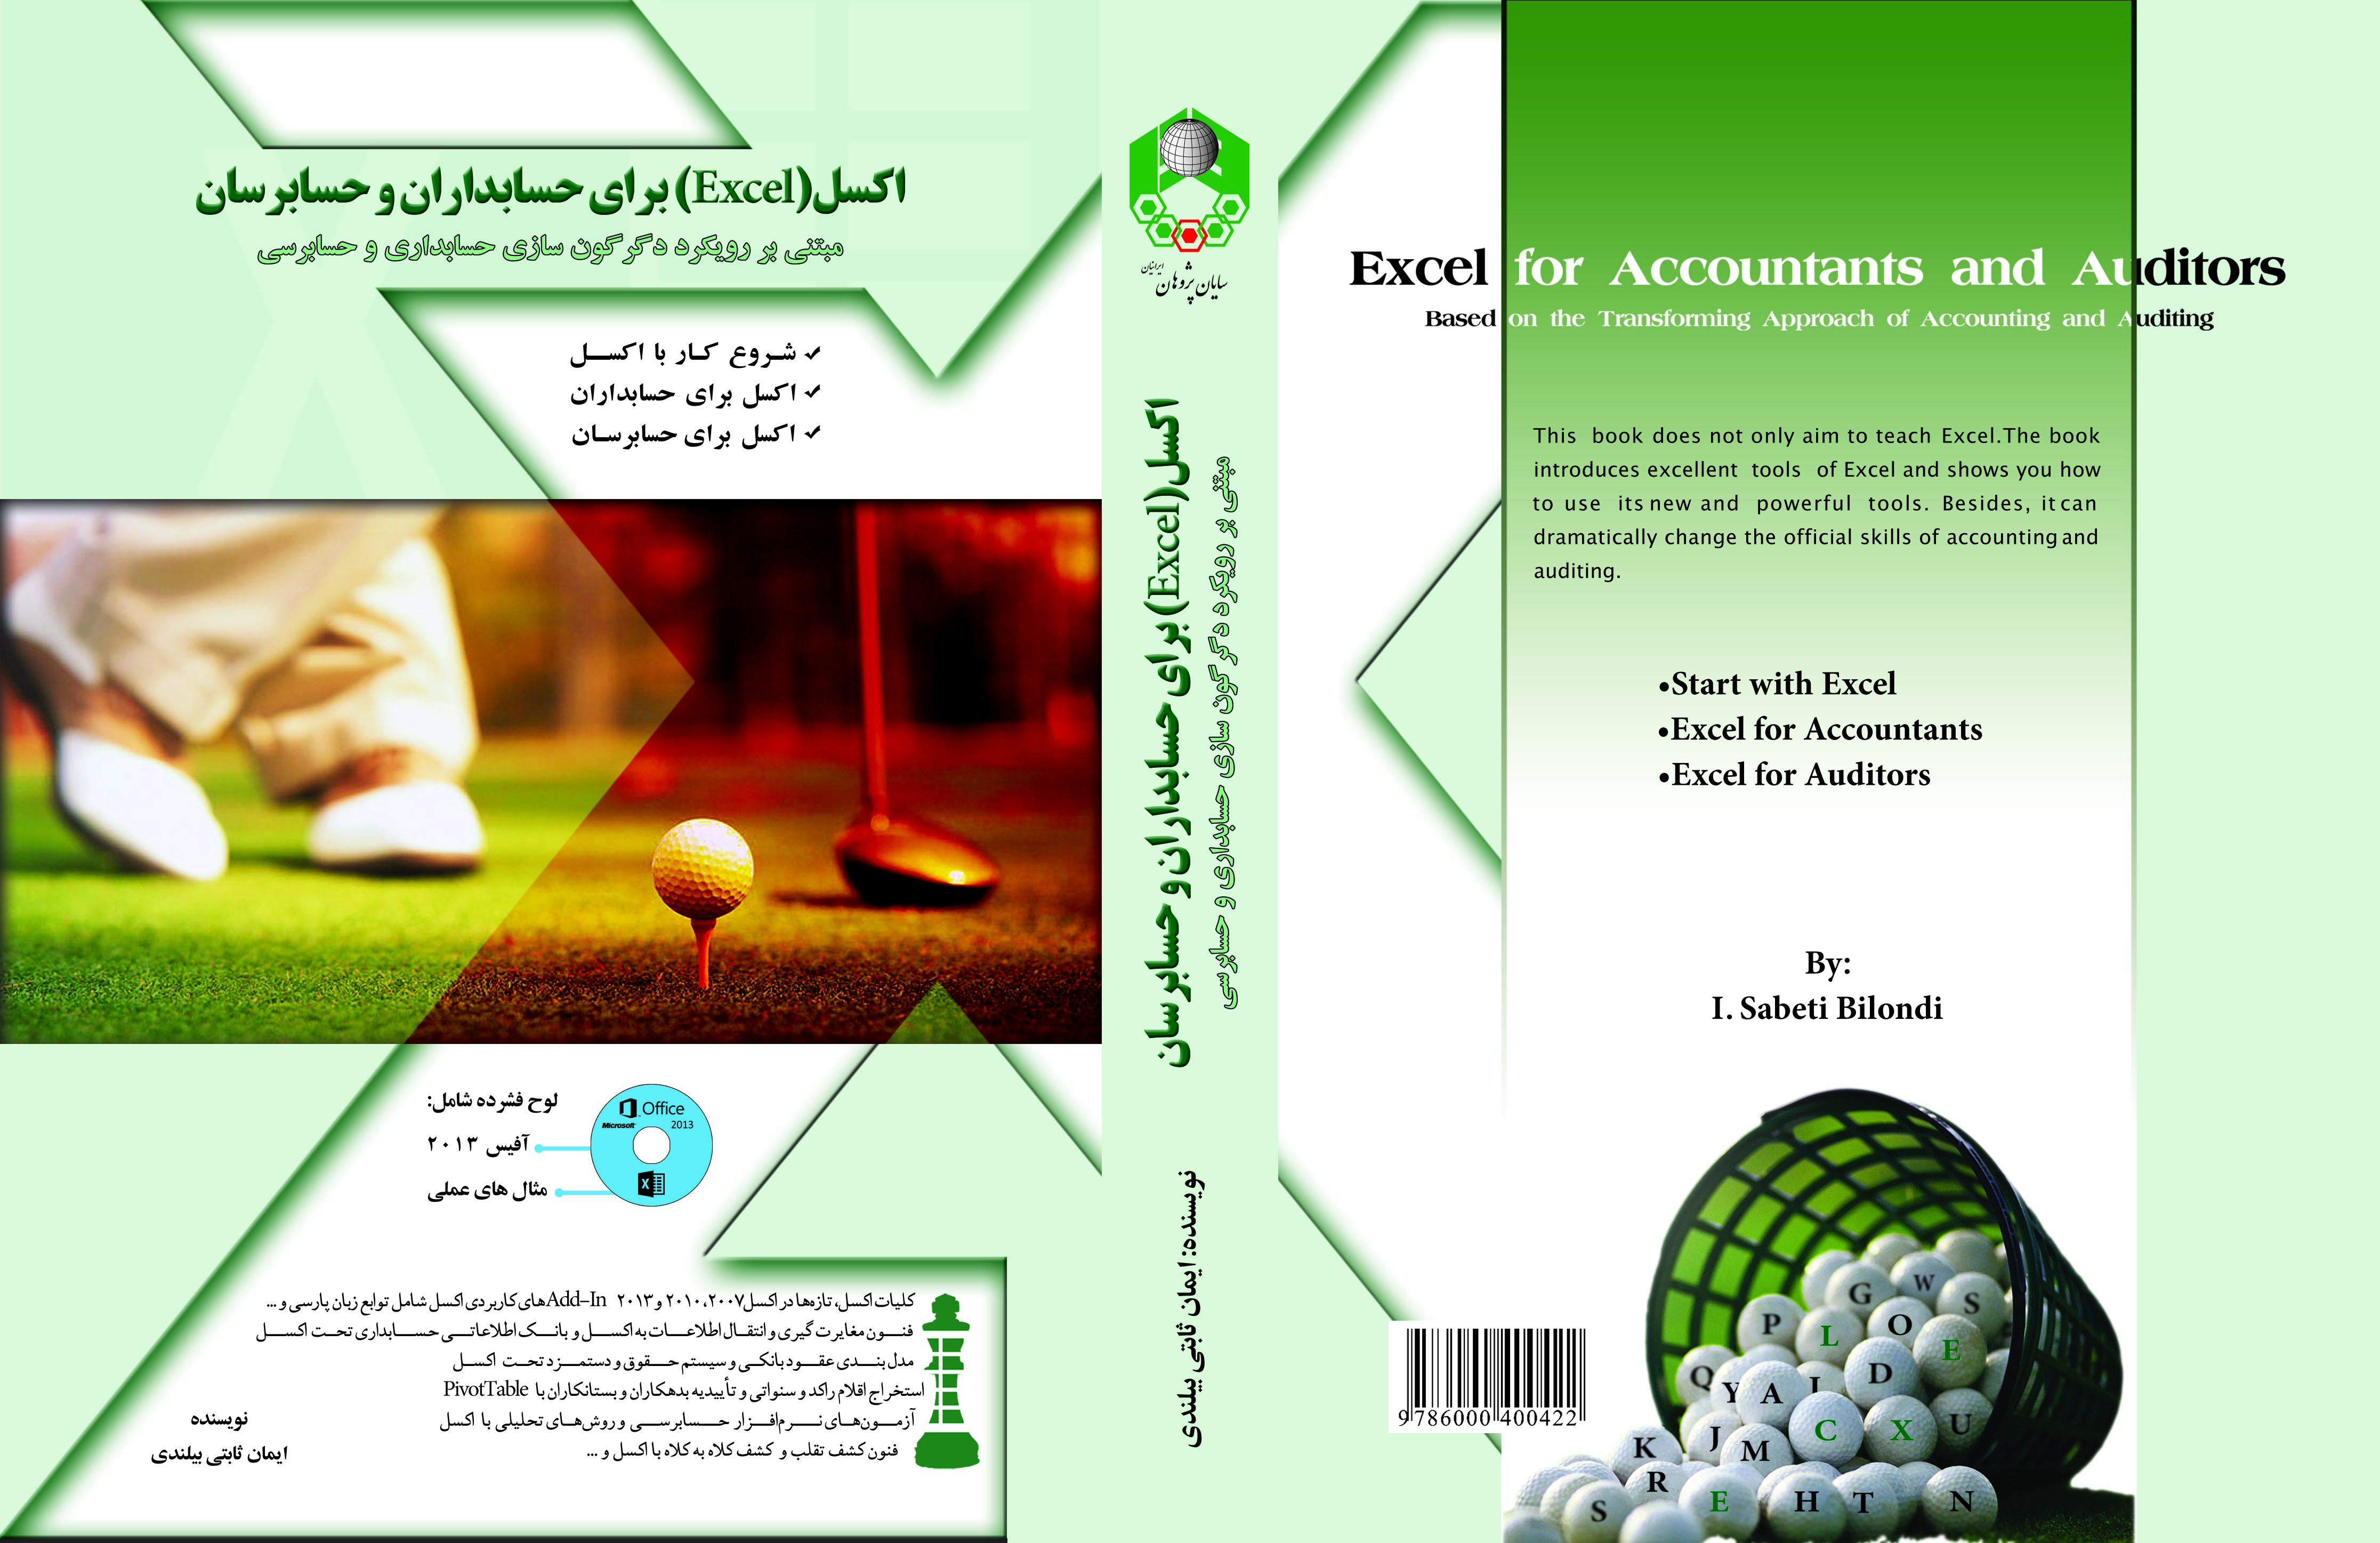 Excel for Accountants and Auditors